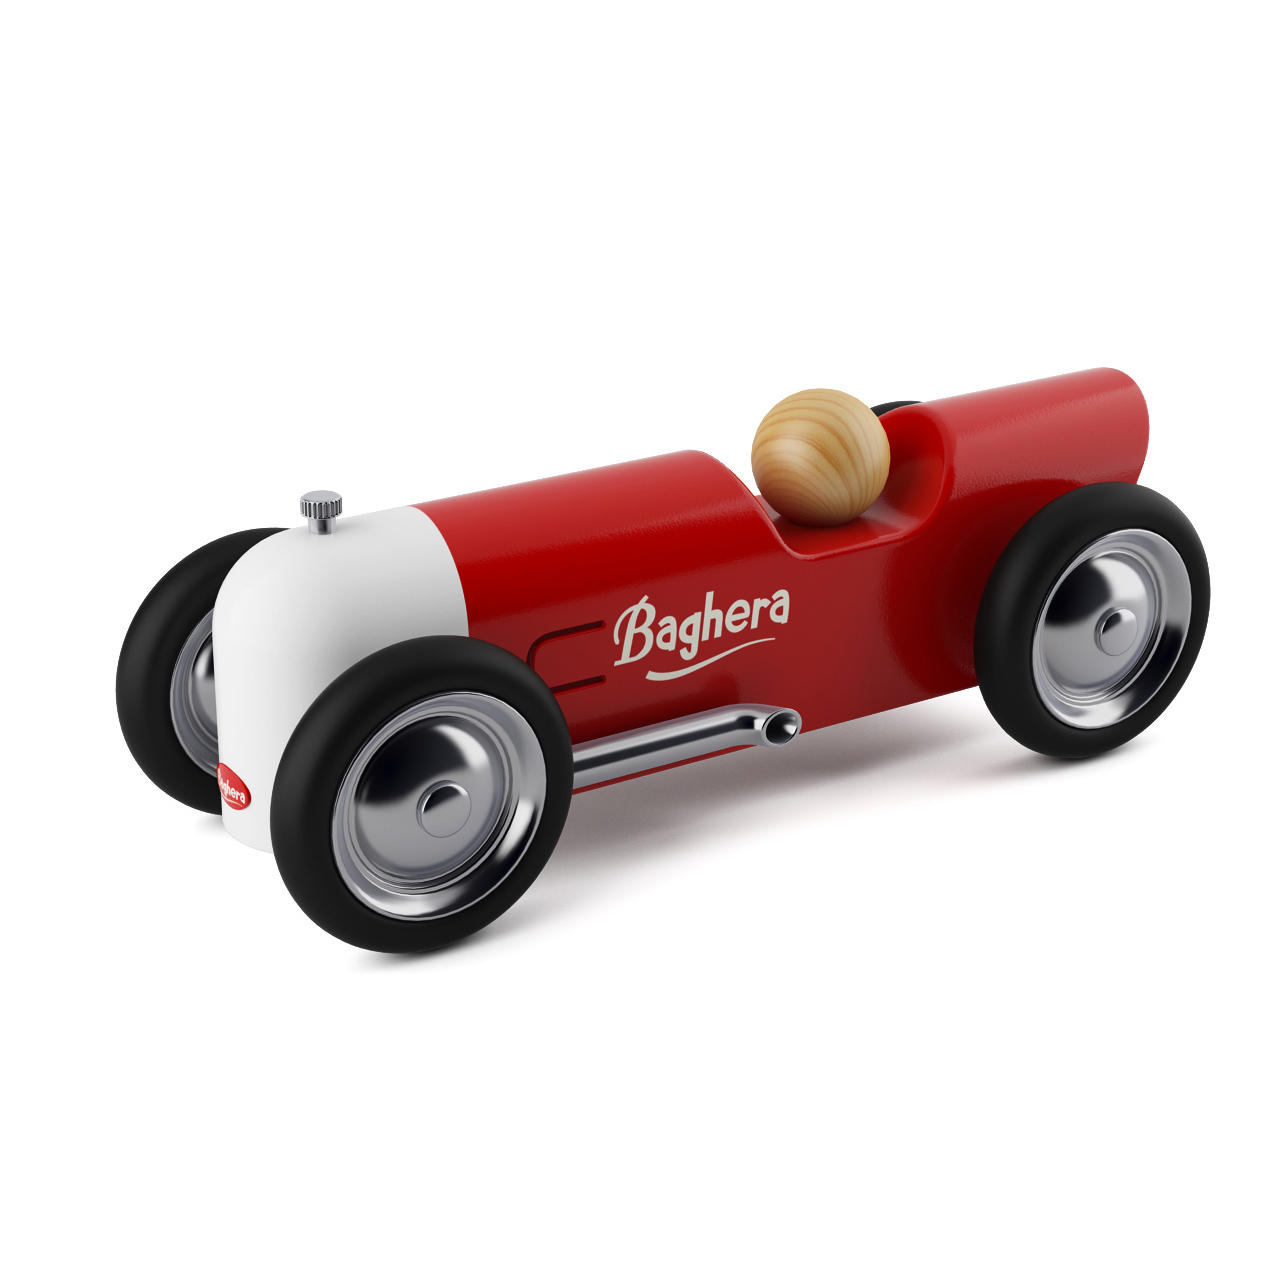 Mini Toy Car Thunder by Baghera